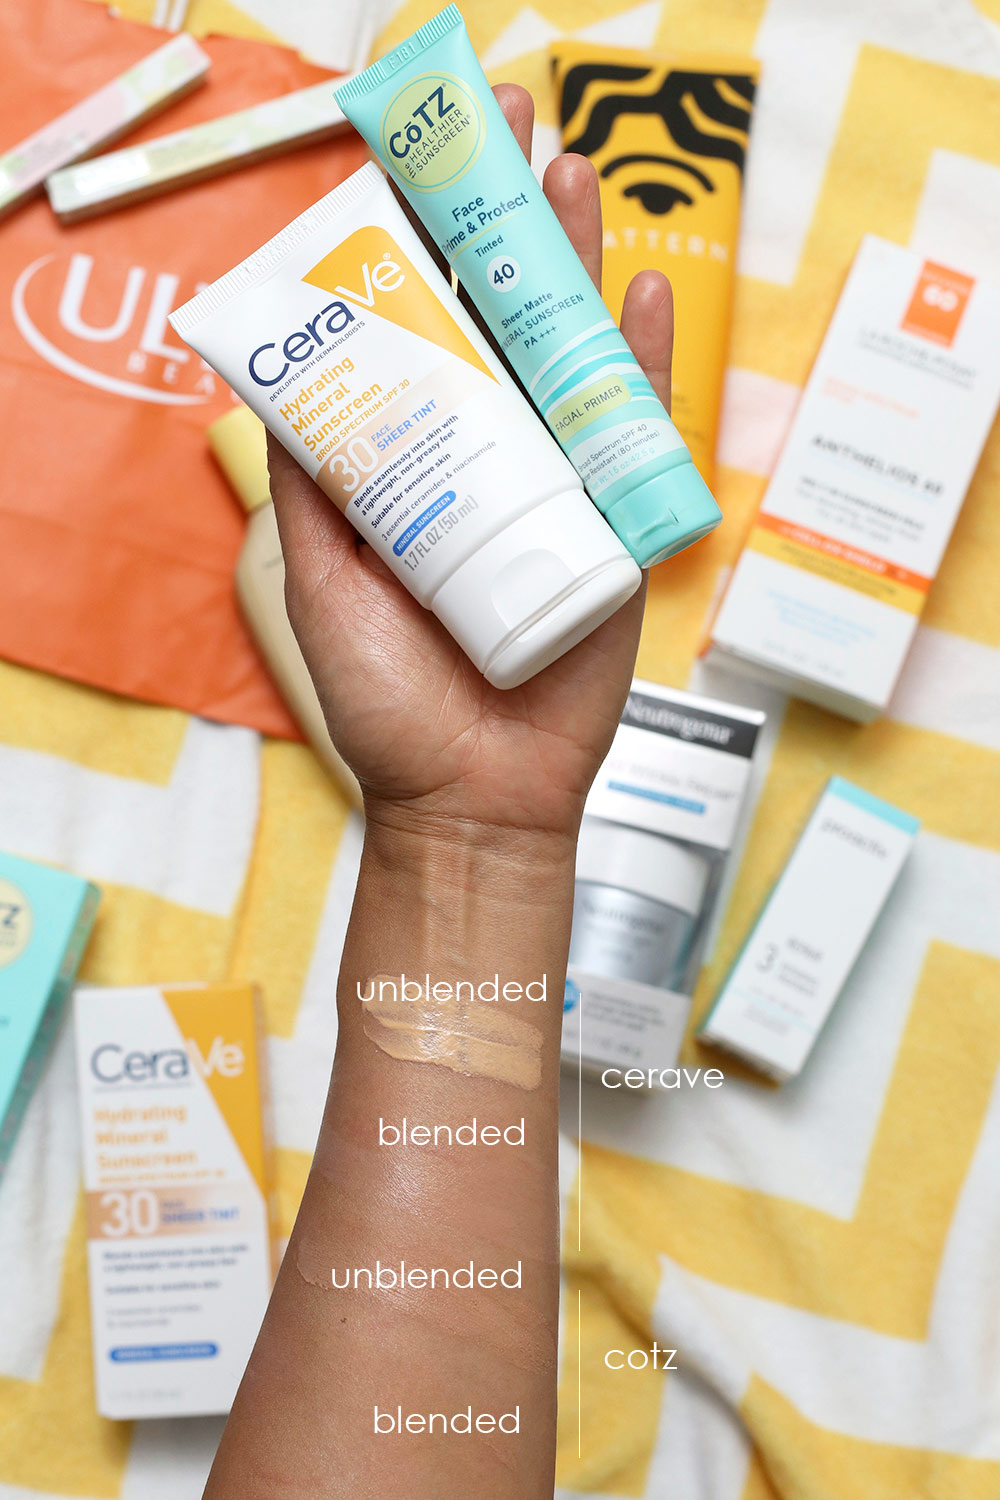 cerave cotz sunscreen swatches